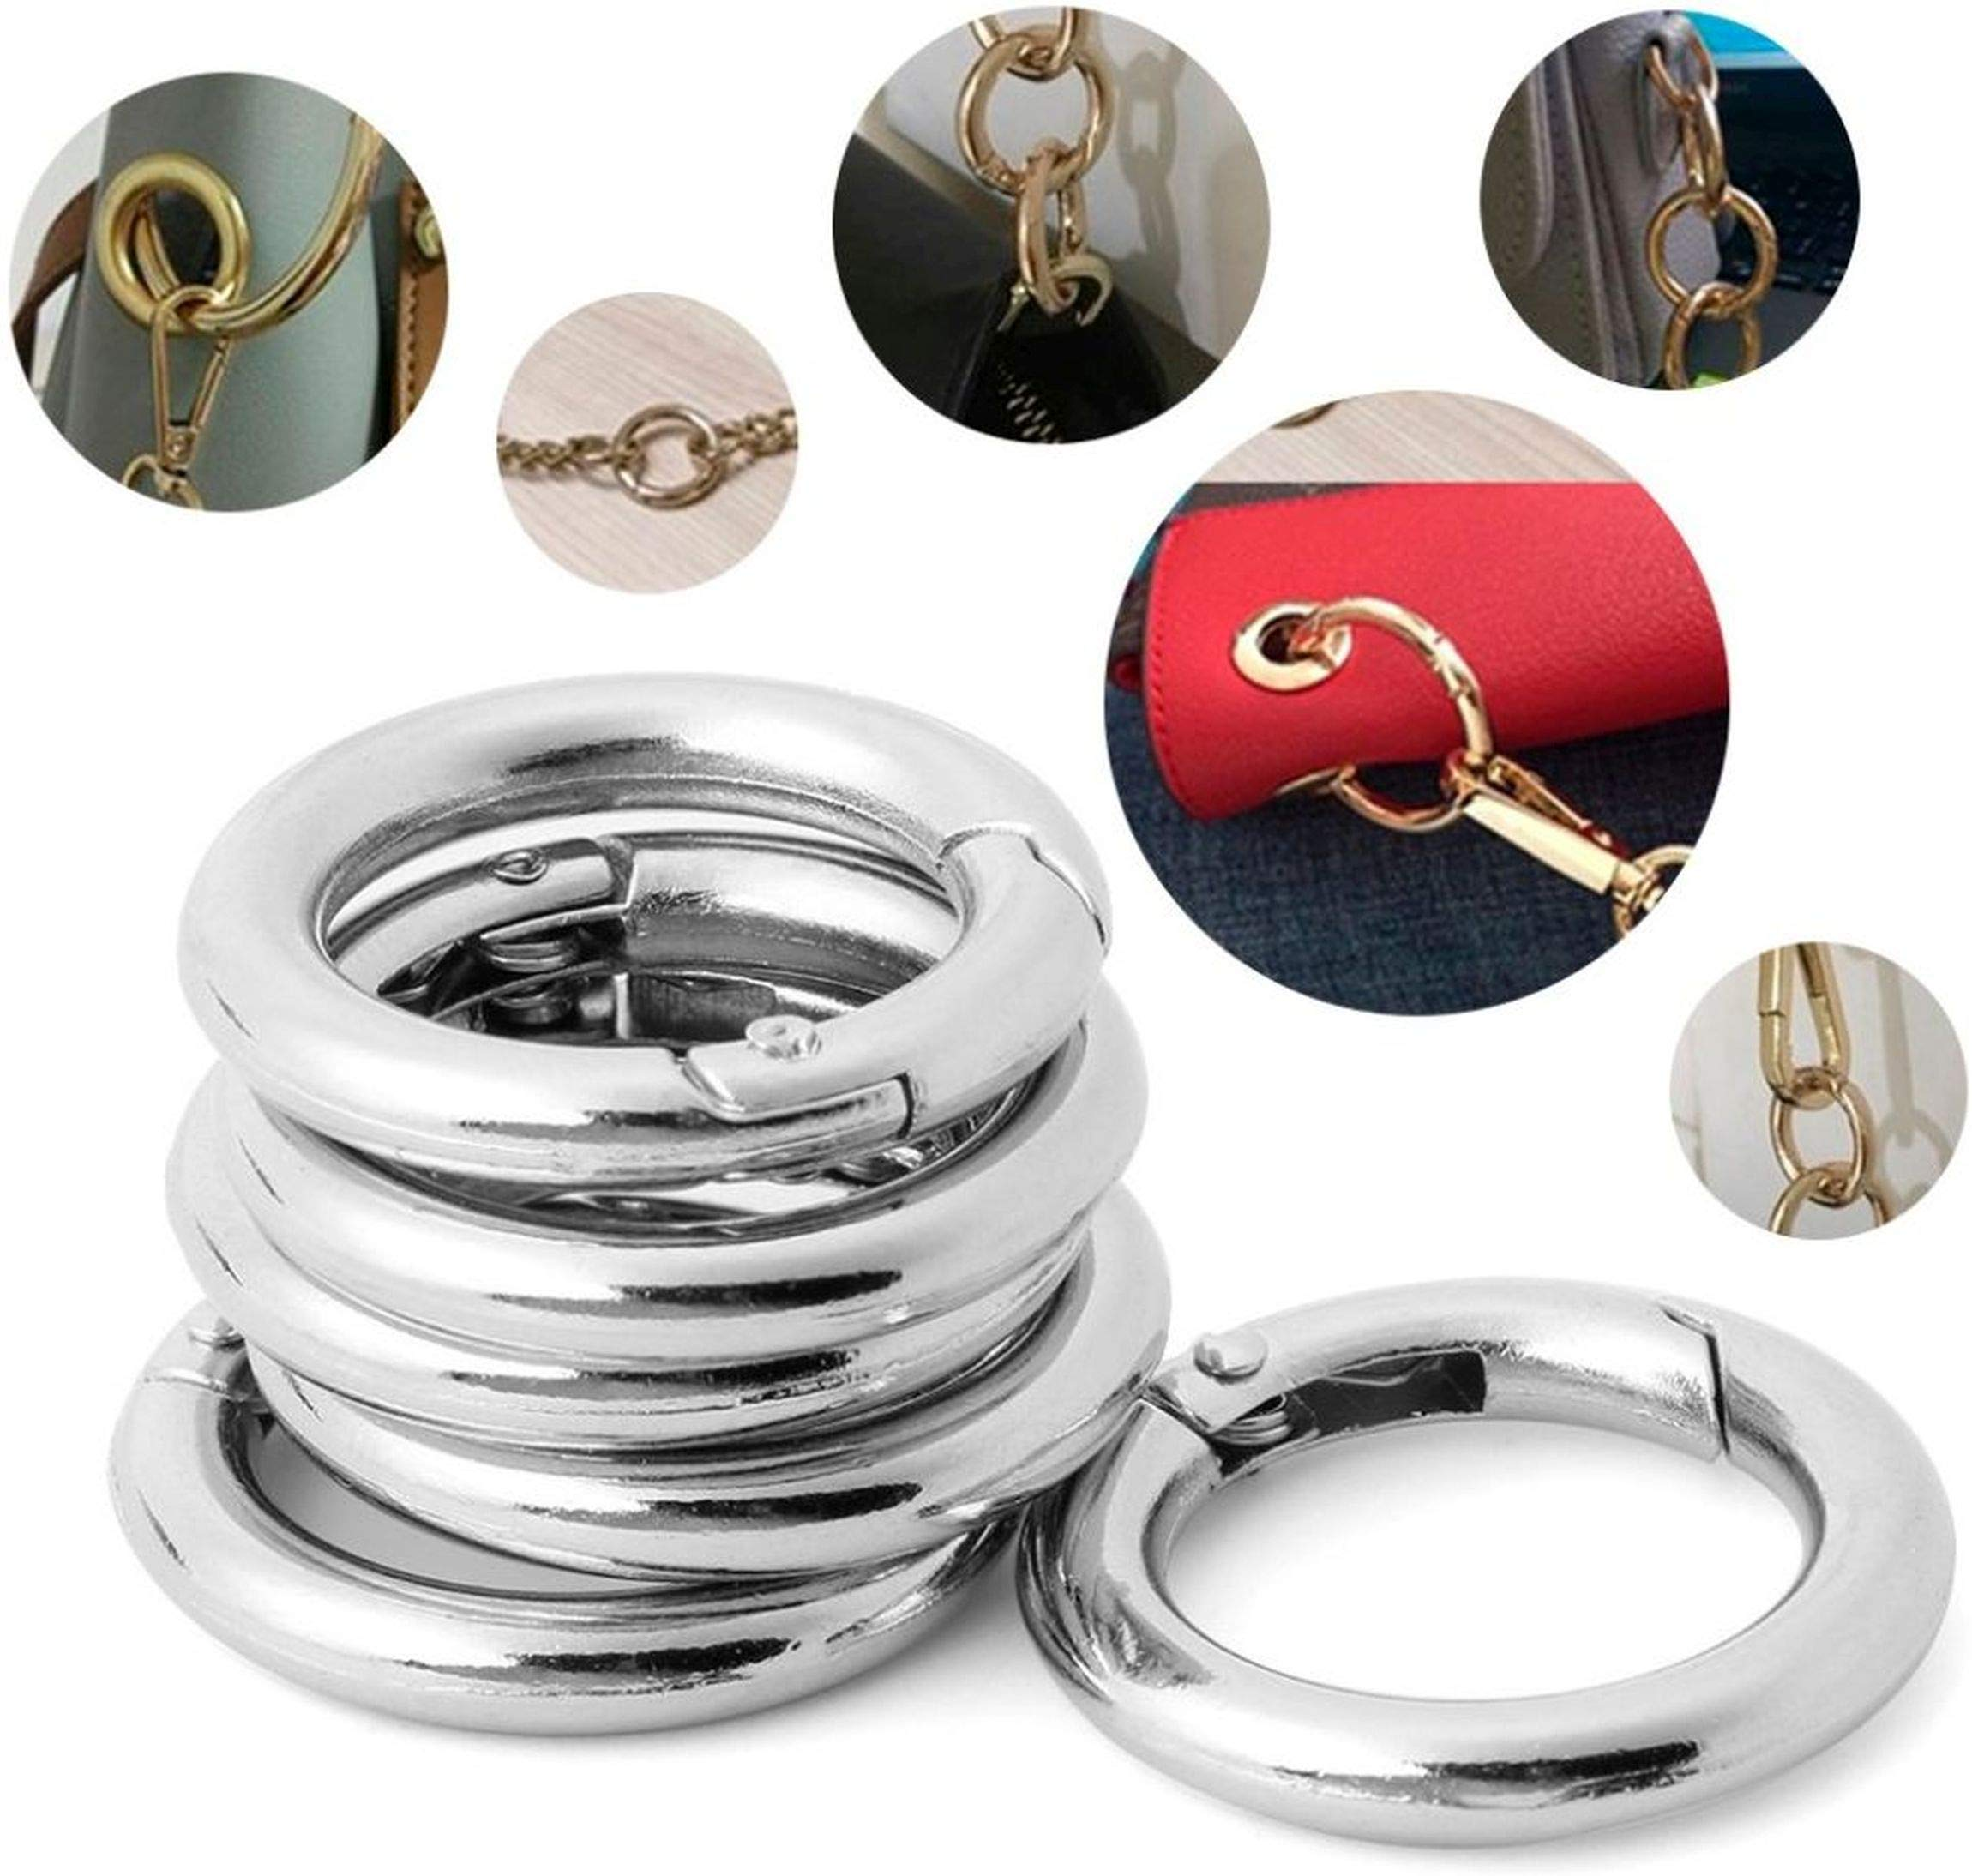 F Fityle 6Pcs Round Carabiner O Spring Loaded Gate Clips Hook Key ring Buckle 25mm Color Choice